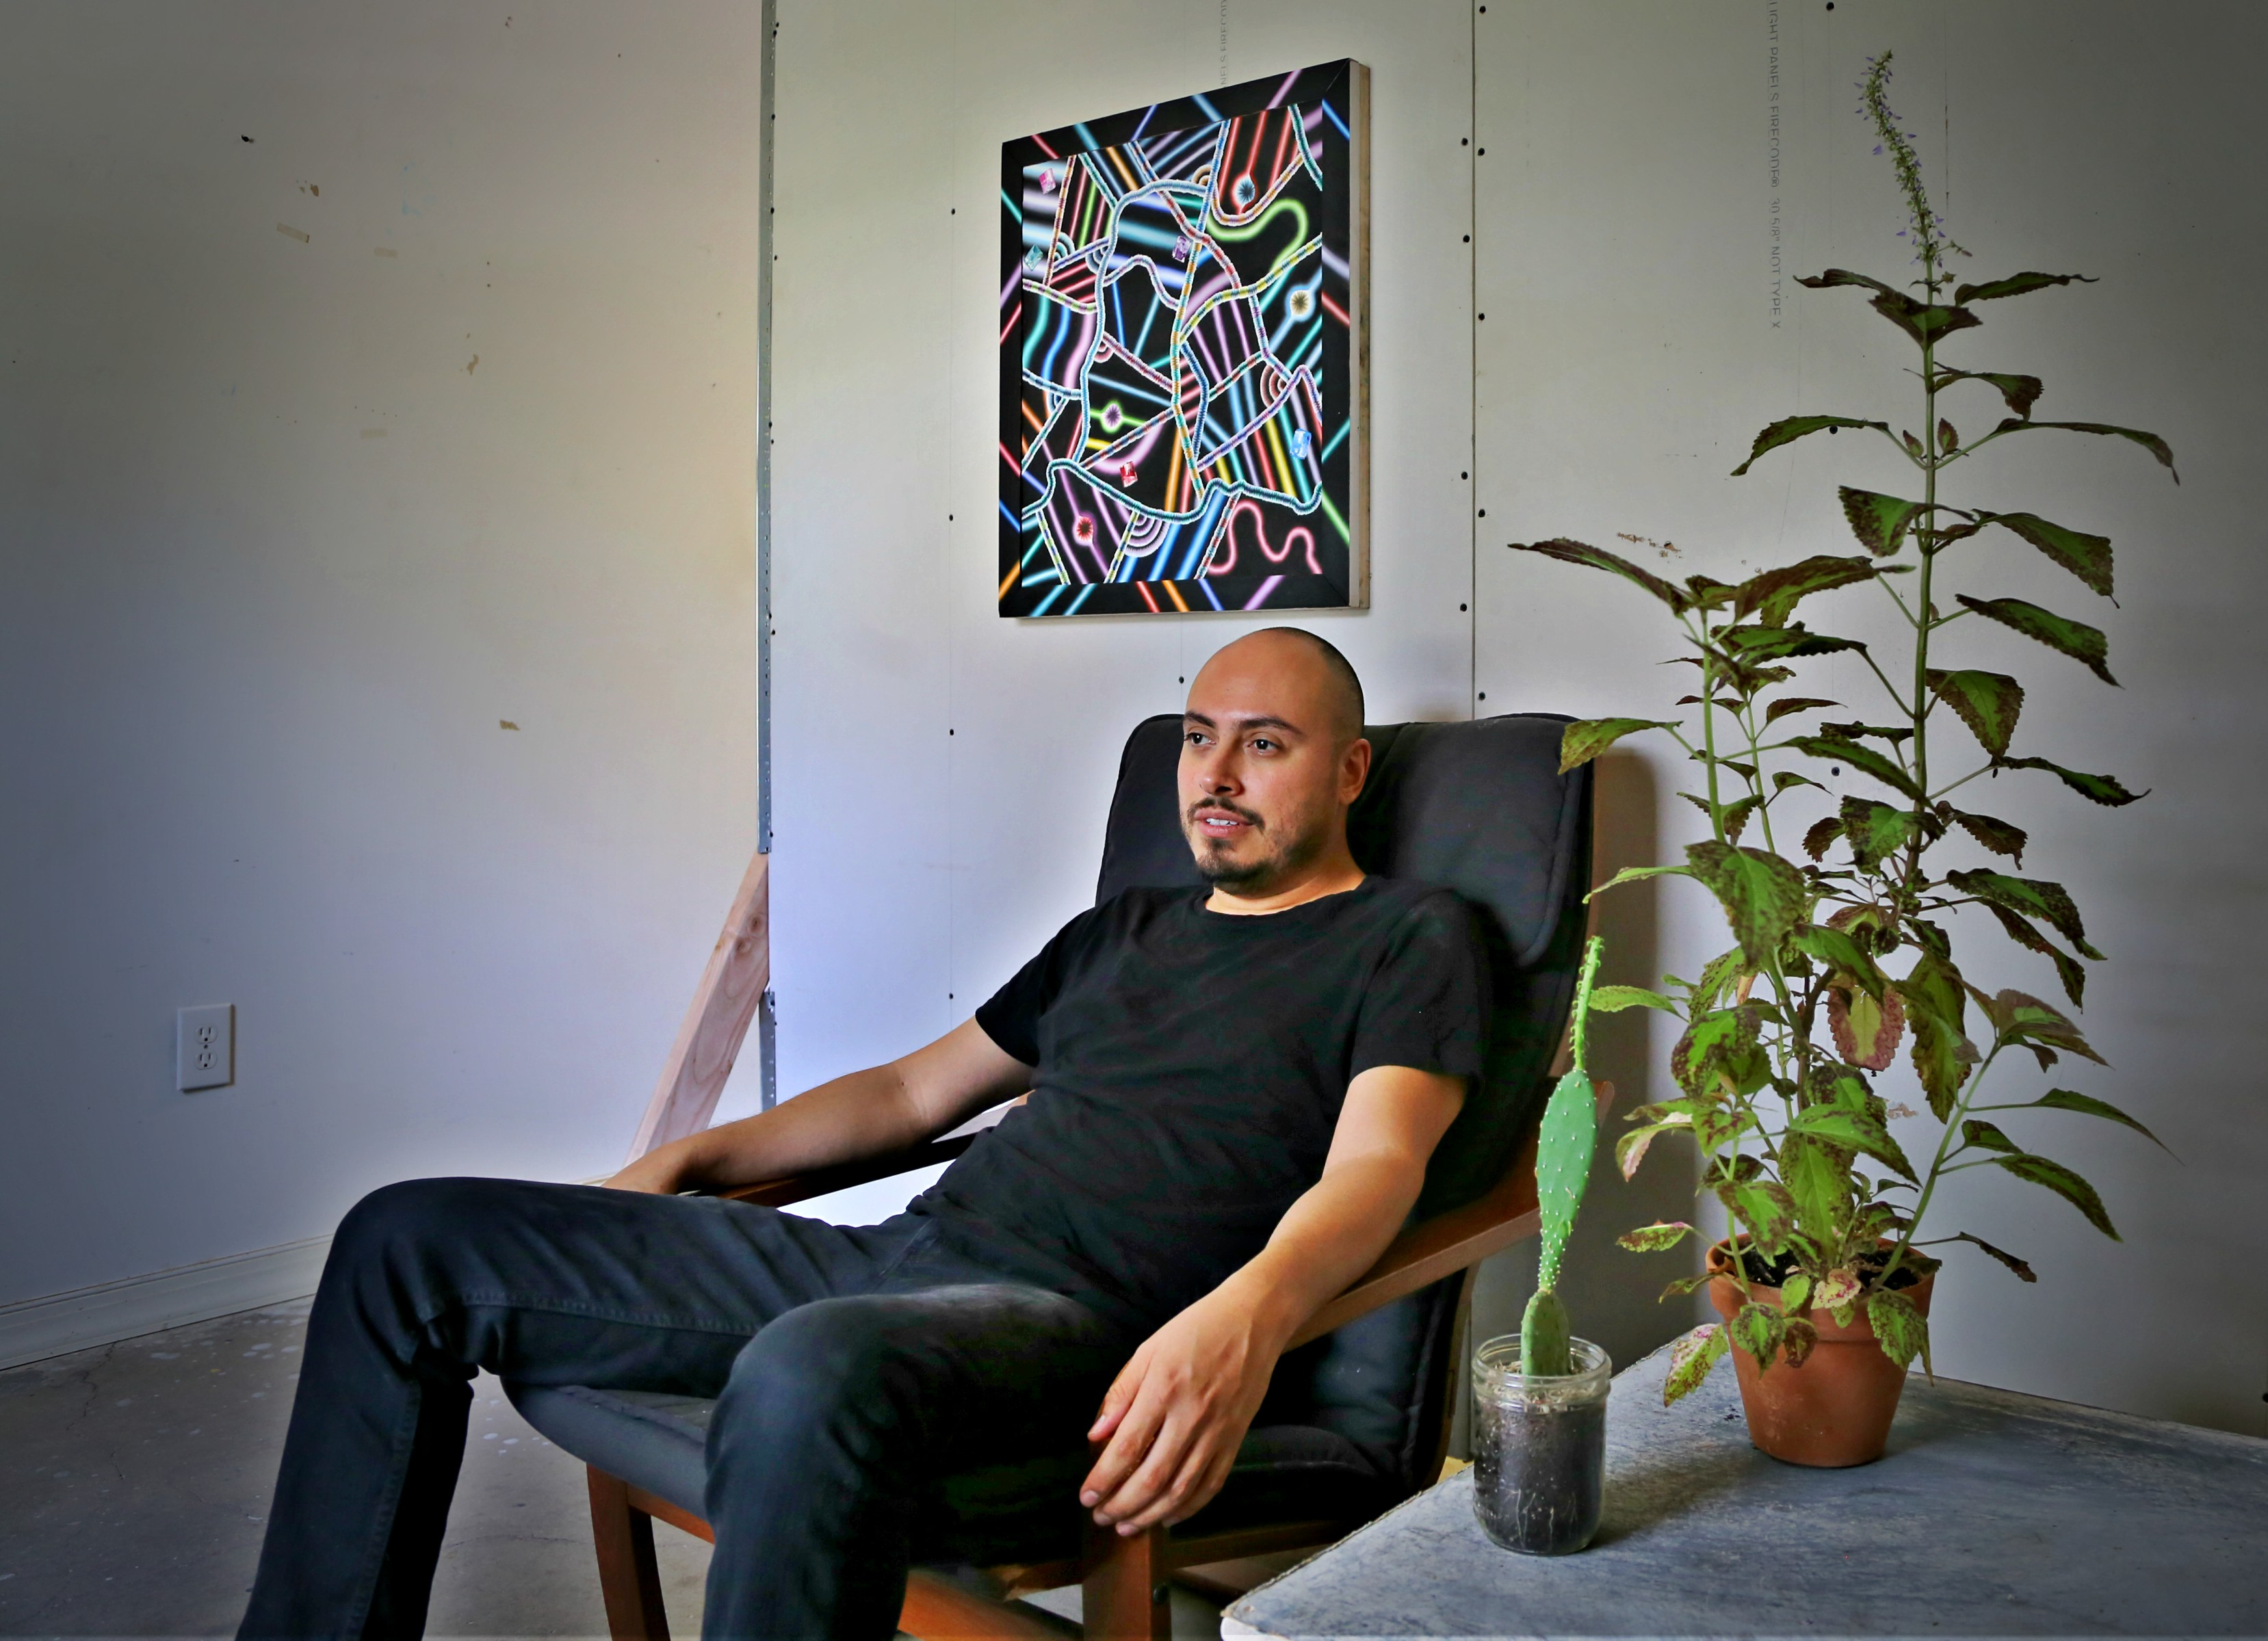 Arthur Peña sits in his studio. He says having plants in the room give him light and life. Photo: Hady Mawajdeh